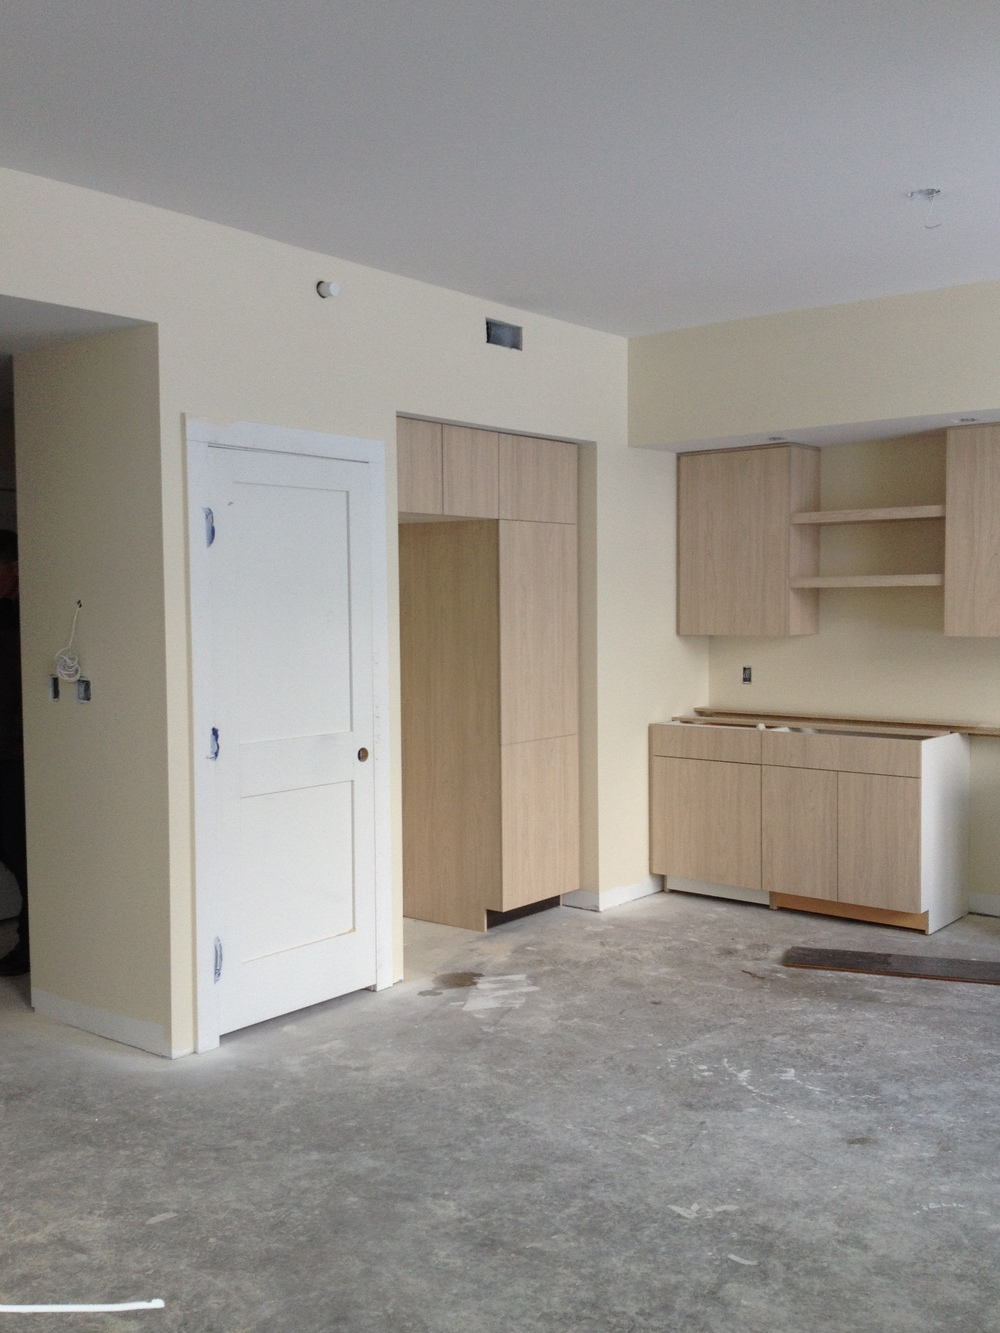 Kitchen cabinets, Refrigerator nook, and pantry in Unit 102.